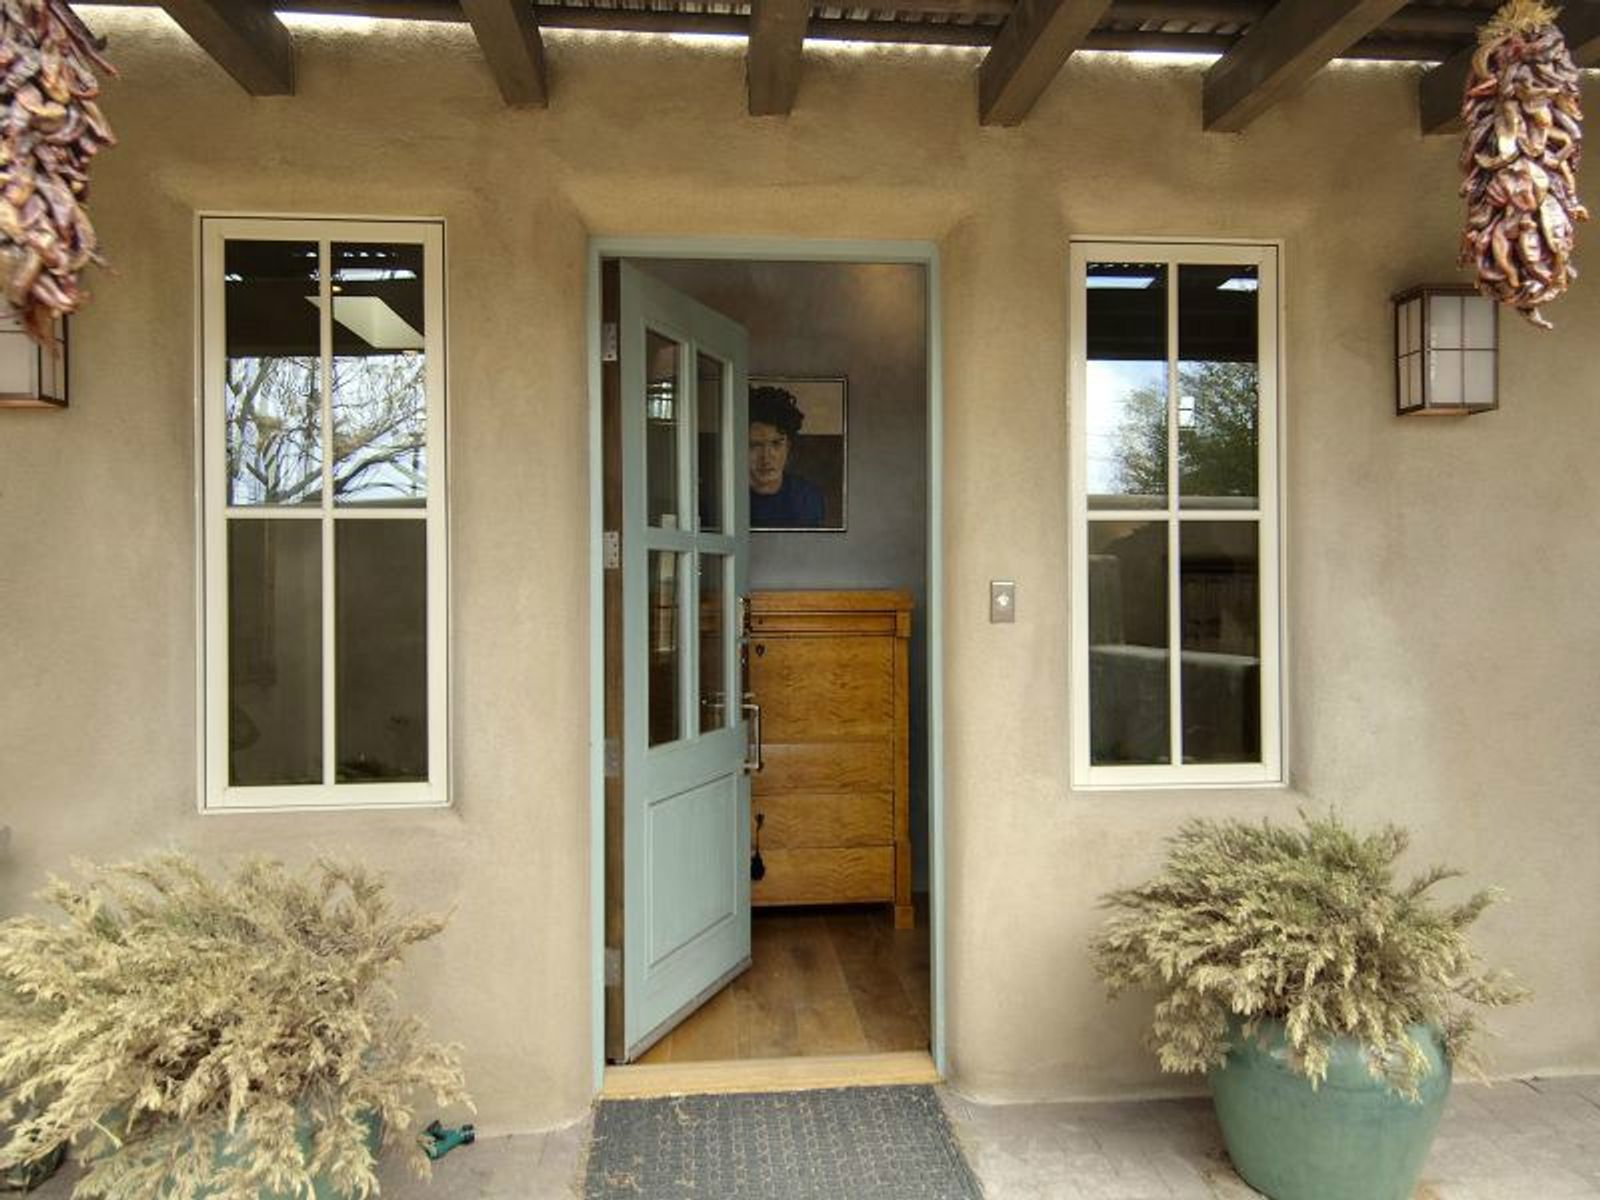 324  Sanchez Street, Santa Fe NM Single Family Home - Santa Fe Real Estate